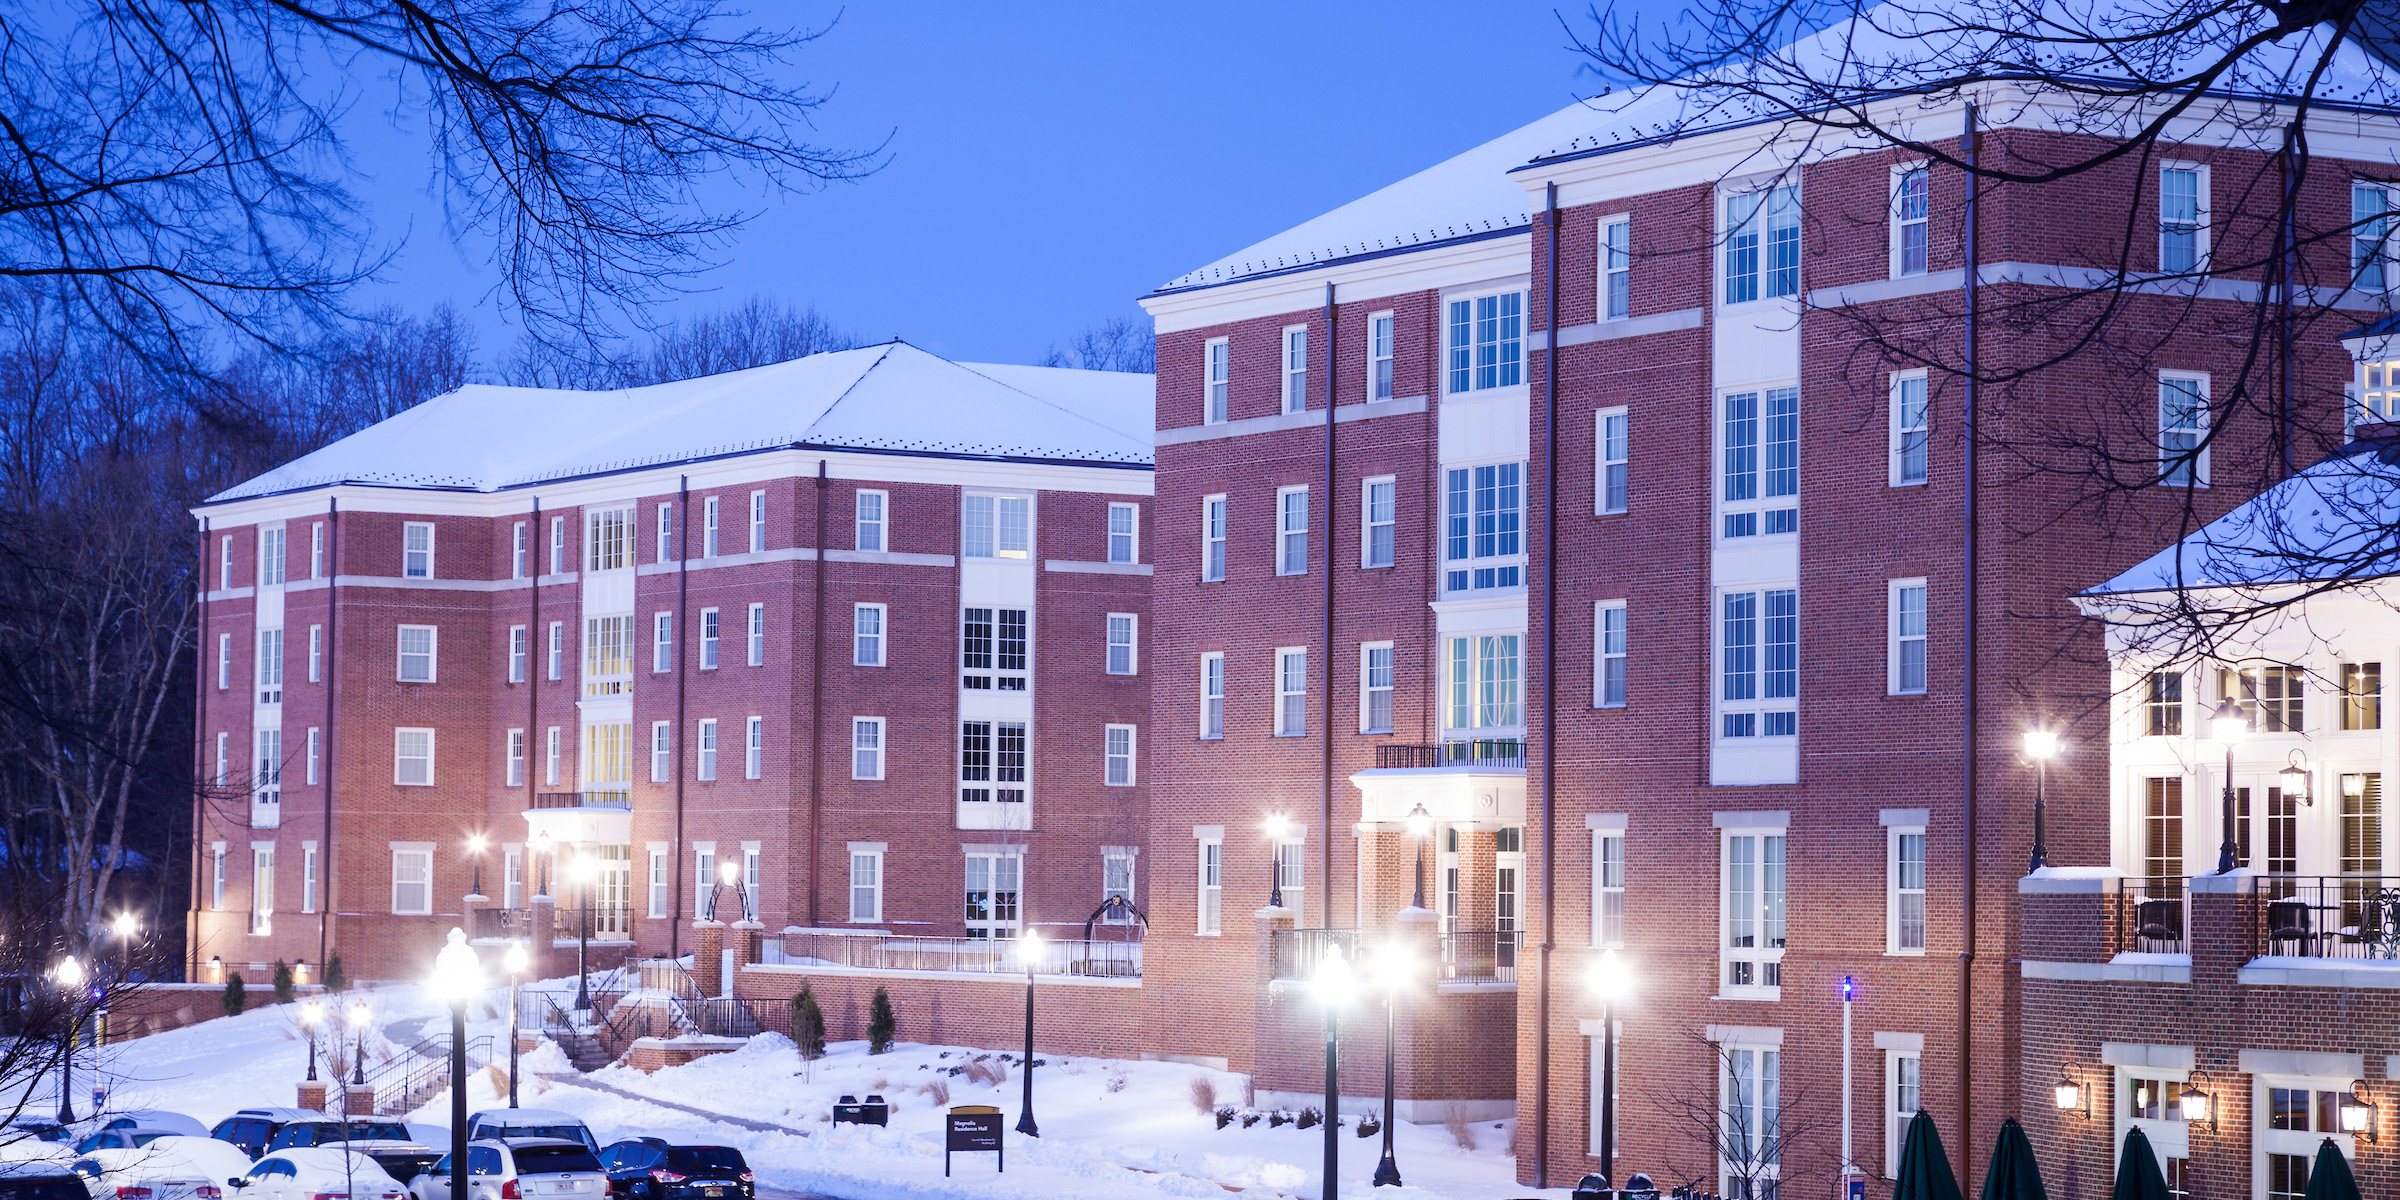 Dogwood and Magnolia residence halls in the snow